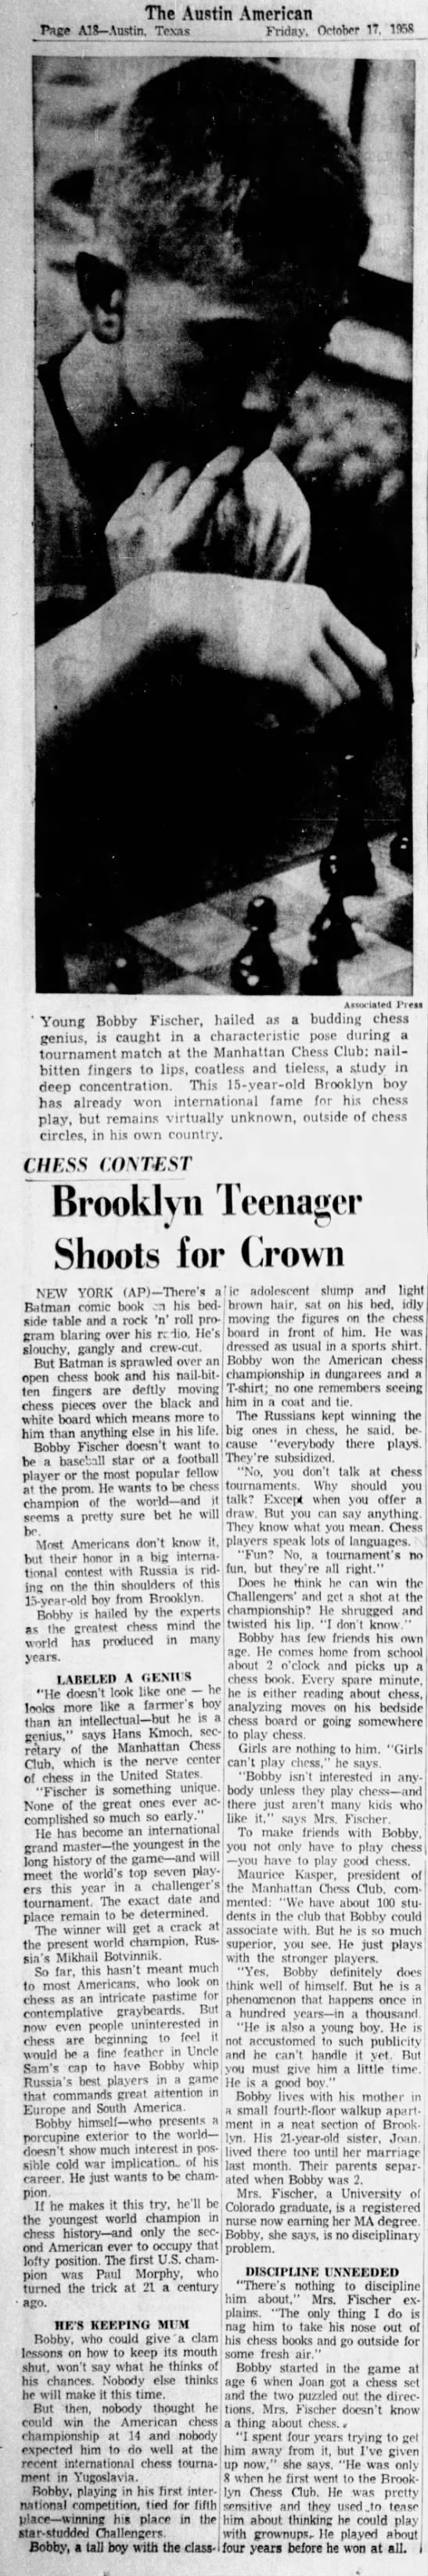 Brooklyn Teenager Shoots for Crown -